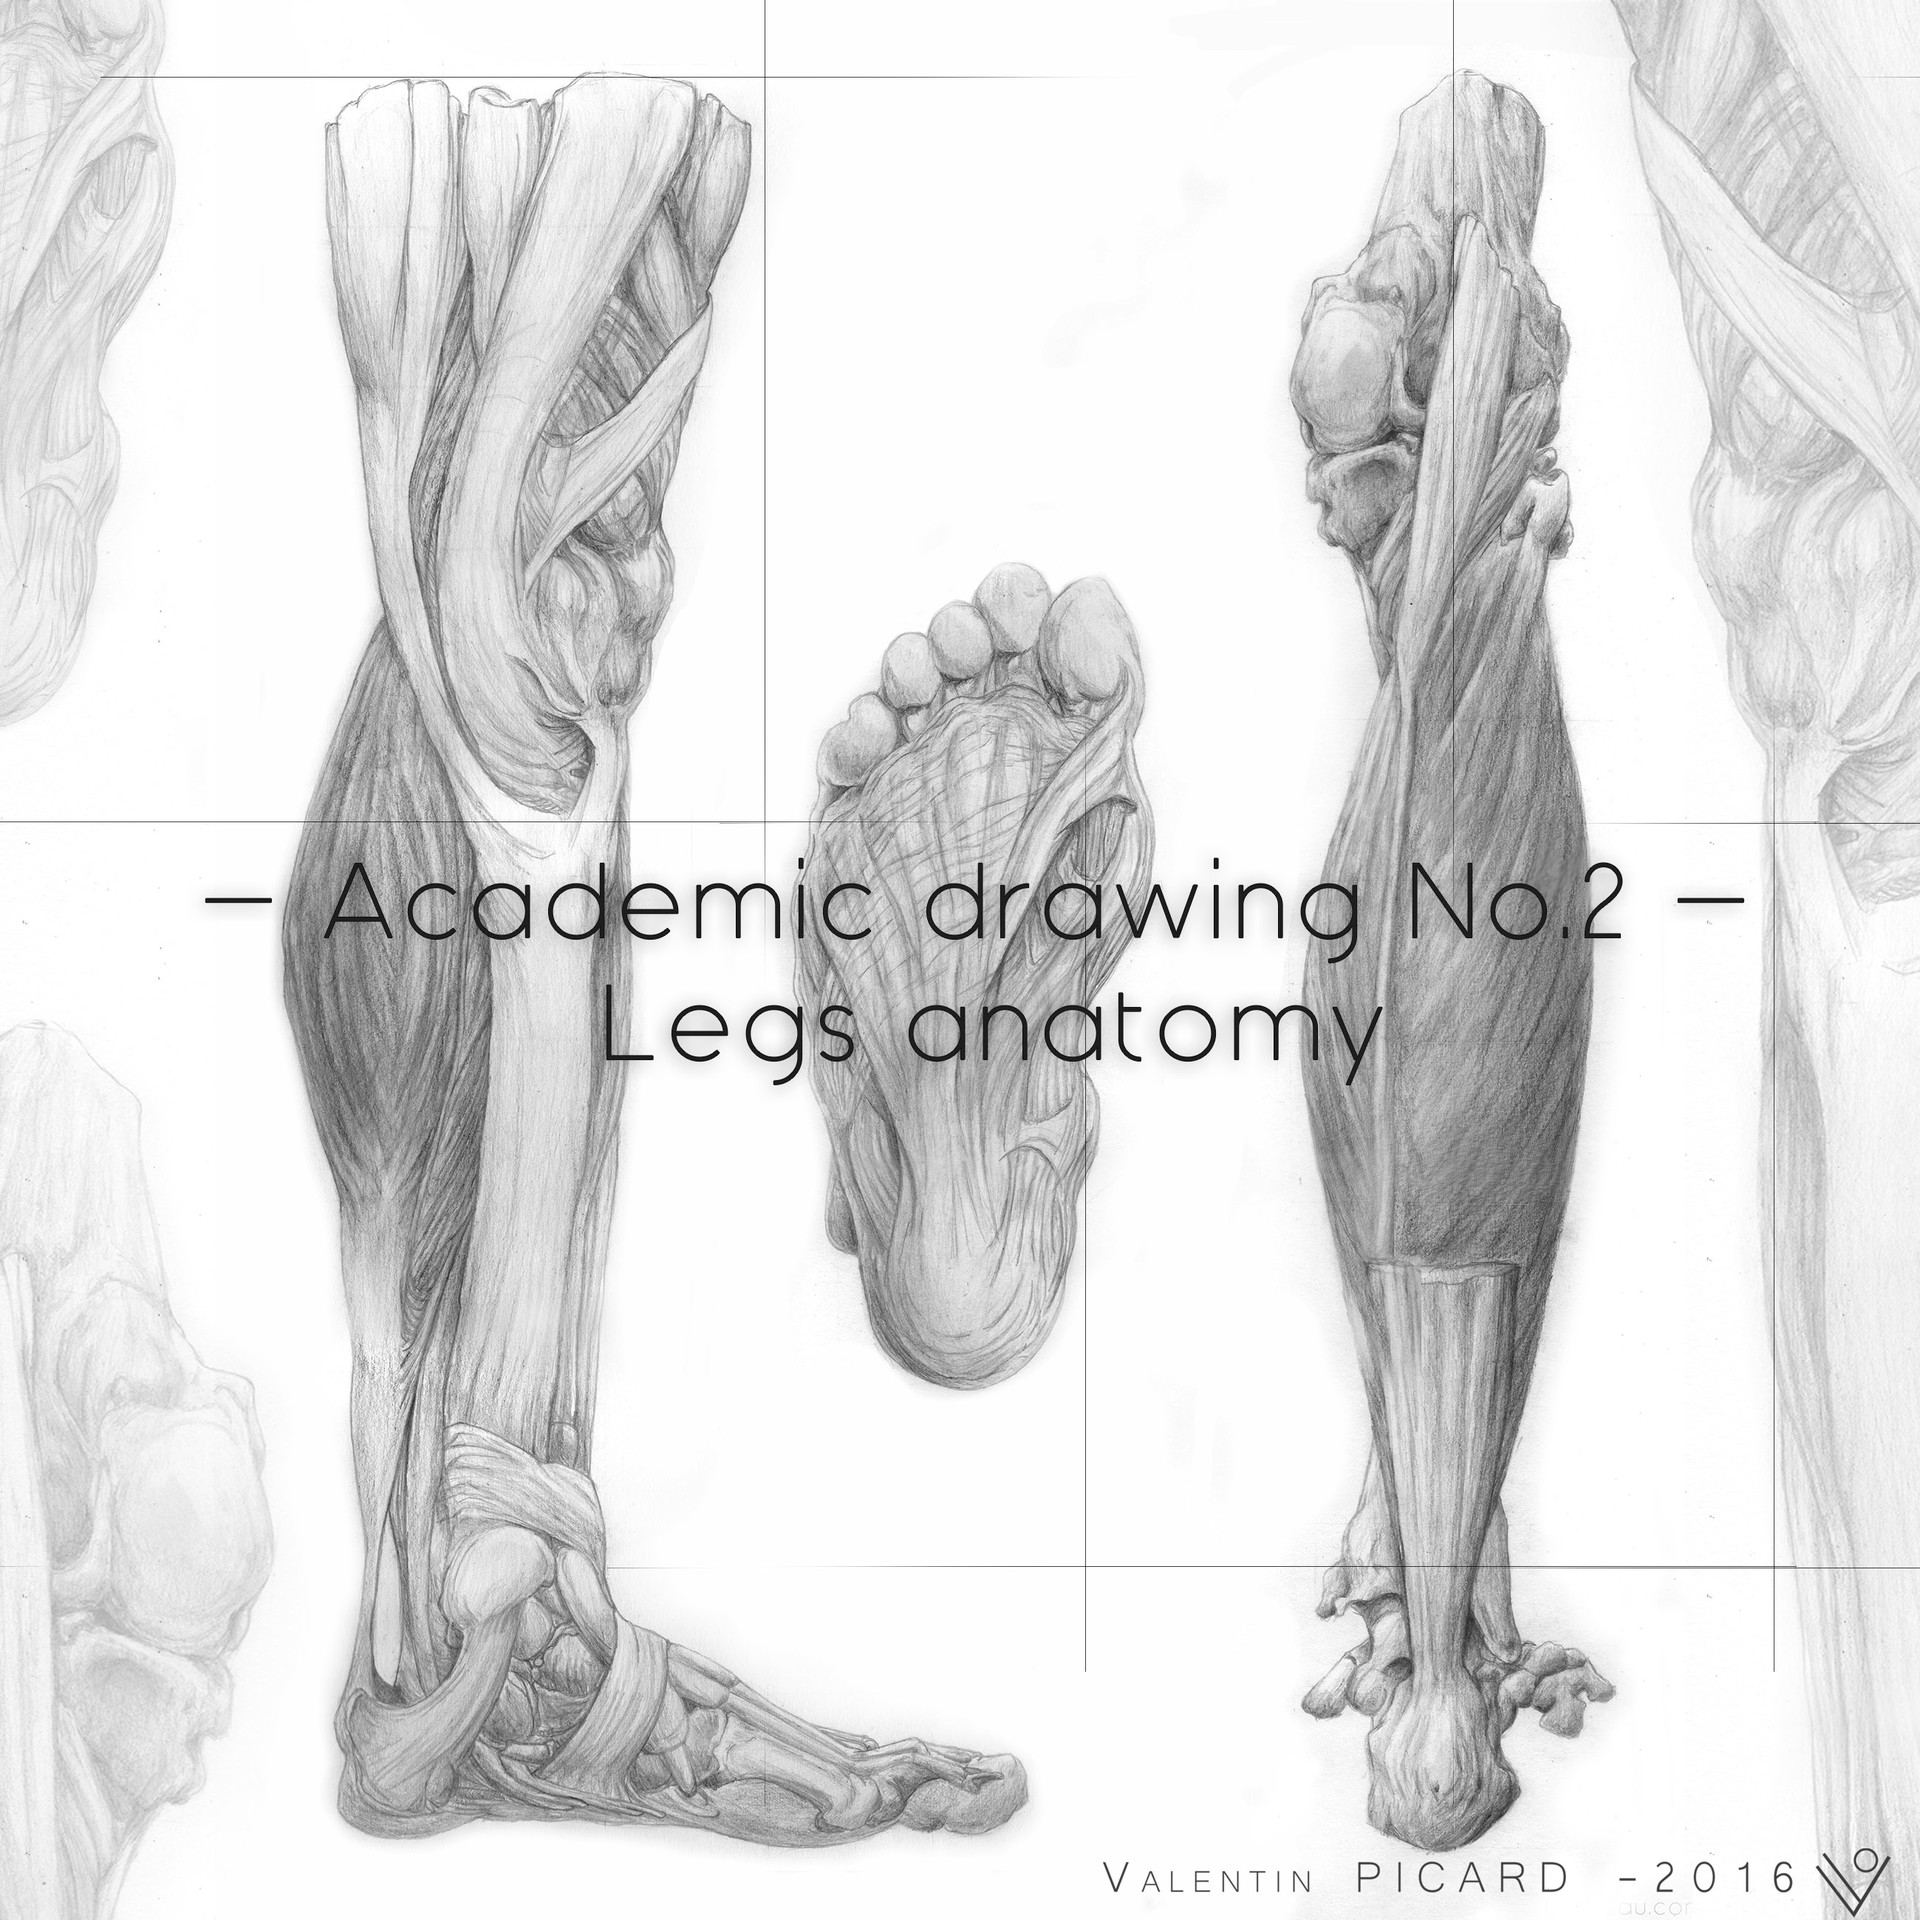 ArtStation - Academic drawing No.2 - Legs anatomy, Valentin PICARD